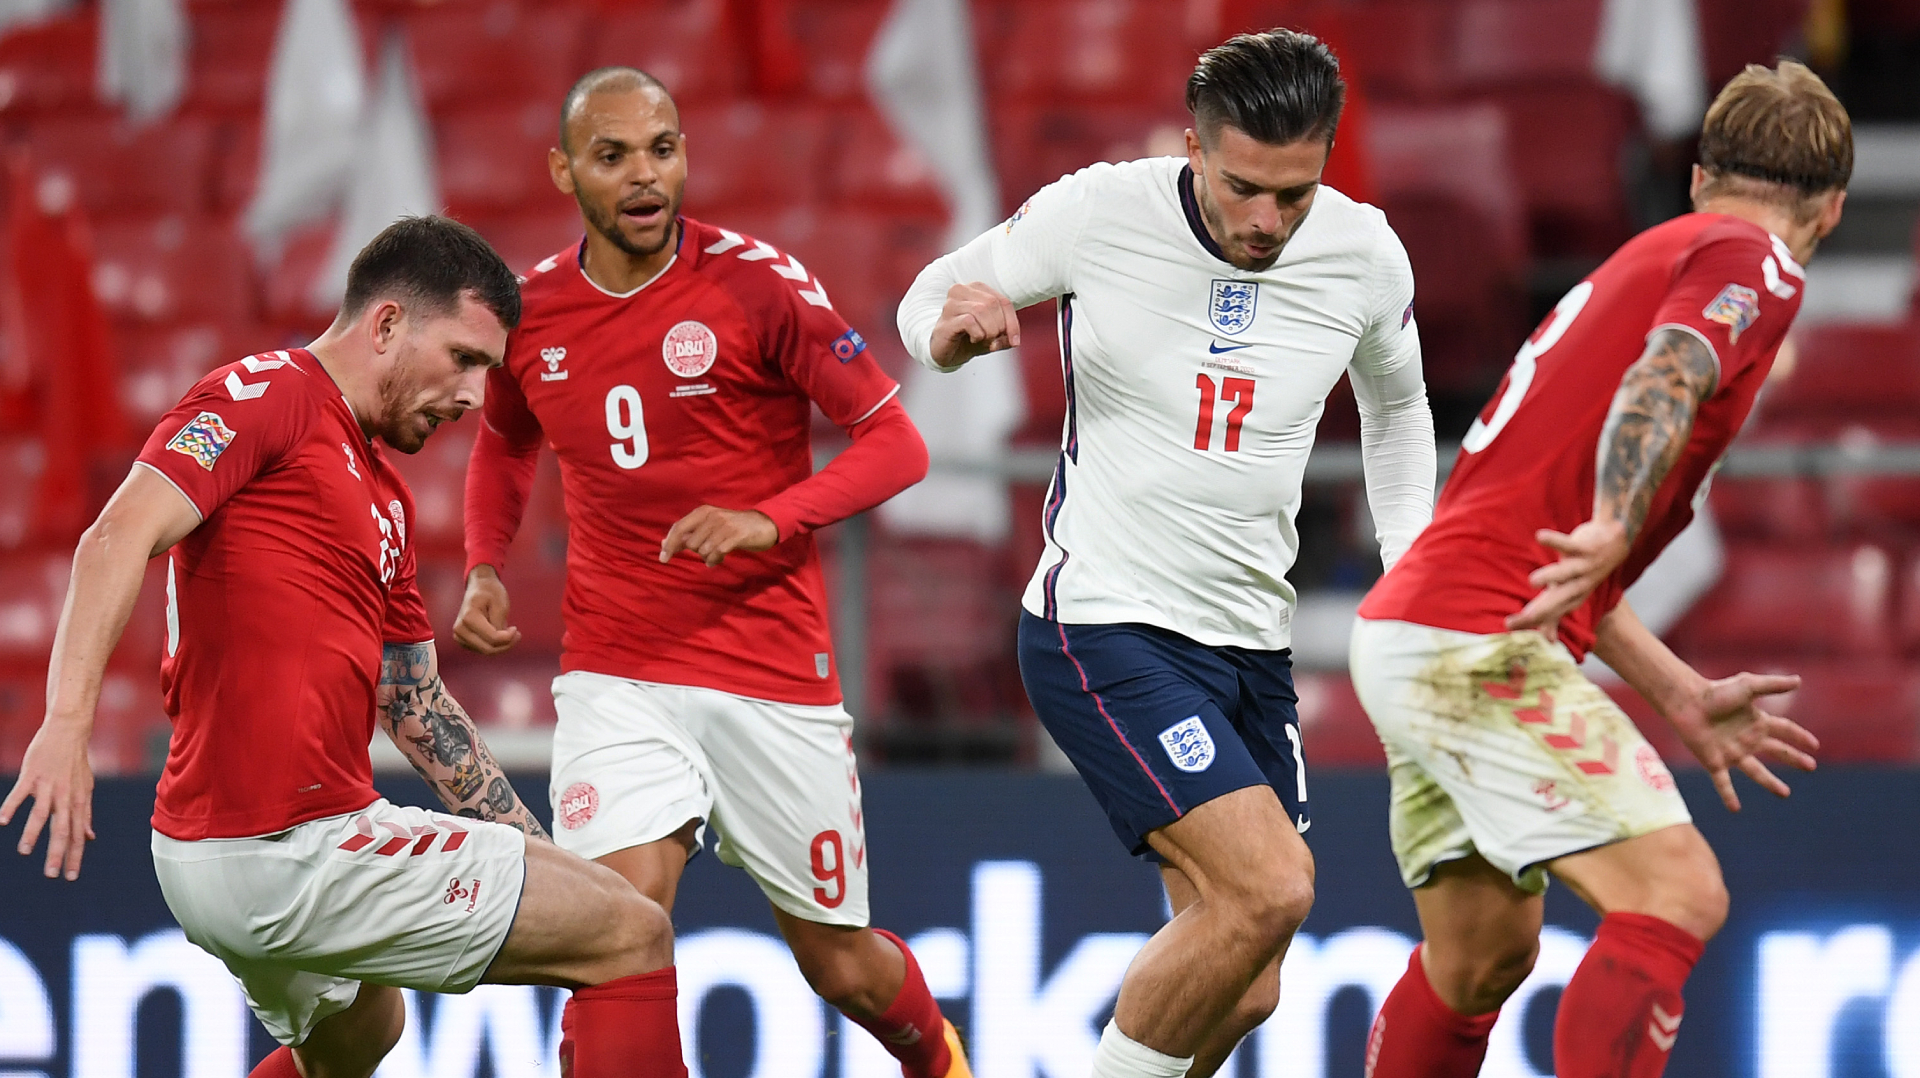 Denmark held England to a 0-0 draw in an uninspiring UEFA Nations League match at the Parken Stadium on Tuesday. The hosts had the best chances in the League A Group 2 match with midfielder Christian Eriksen involved on both occasions. Eriksen's clever turn in the 37th minute left his former Tottenham Hotspur team mate […]